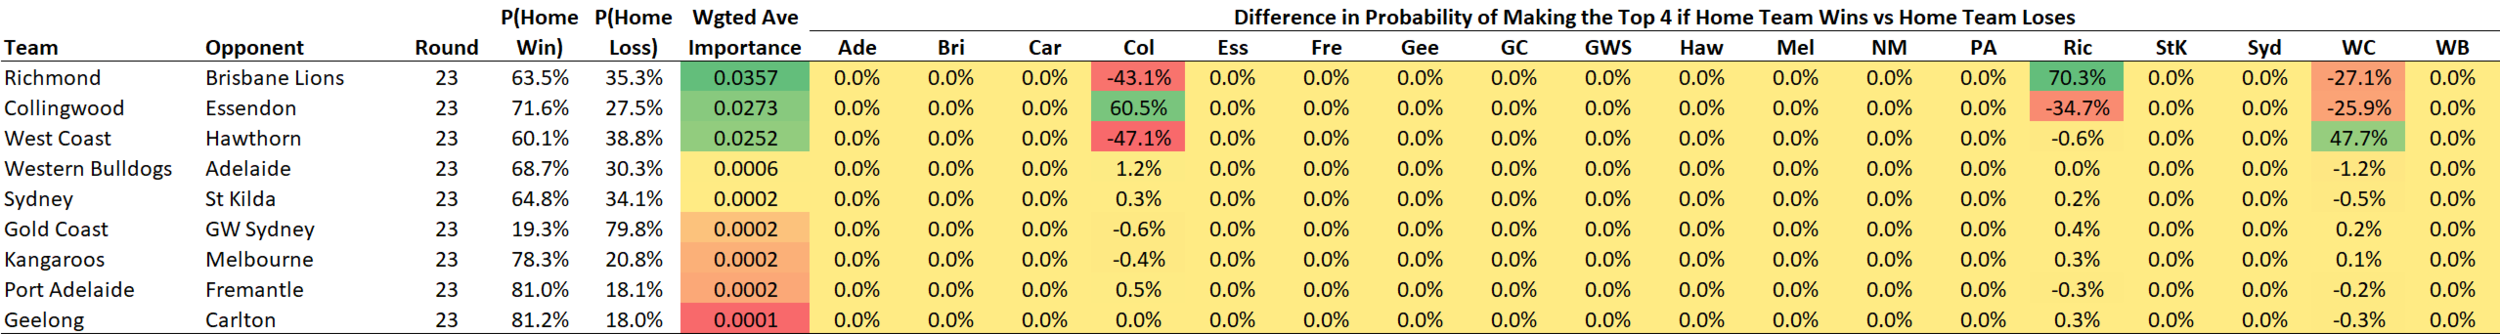 R23 - Game Importance - Top 4.png